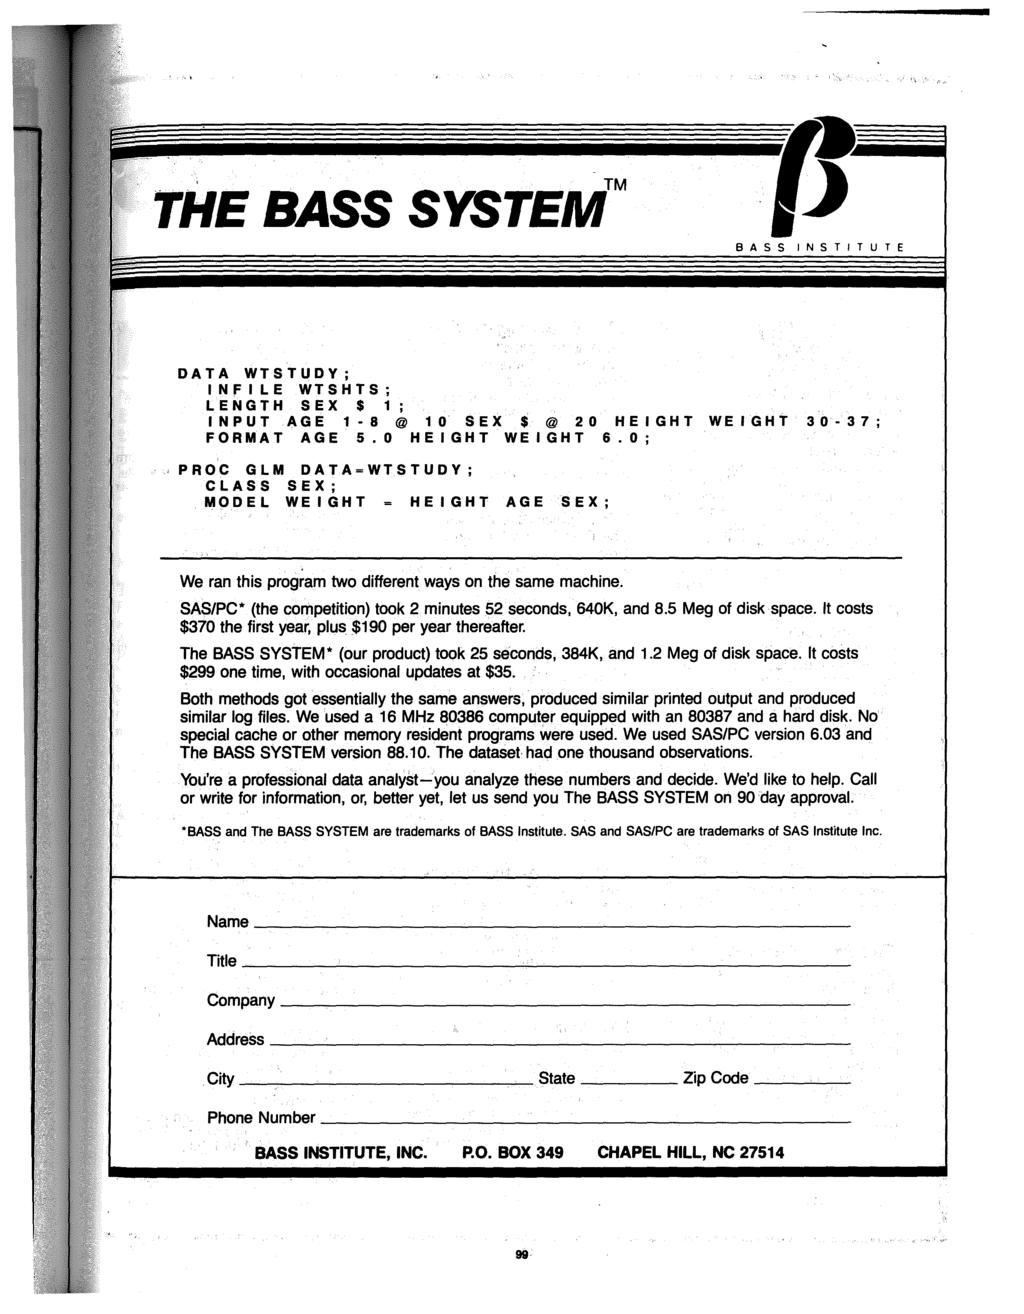 '. TM THE BASS SYSTEM 8 A INSTITUTE DATA WTSTUDY; INFILE WTSHTS; LENGTH SEX $ 1; INPUT AGE 1-8@ 10 SEX$@ 20 HEIGHT WEIGHT 30-37; FORMAT AGE 5.0 HEIGHT WEIGHT 6.